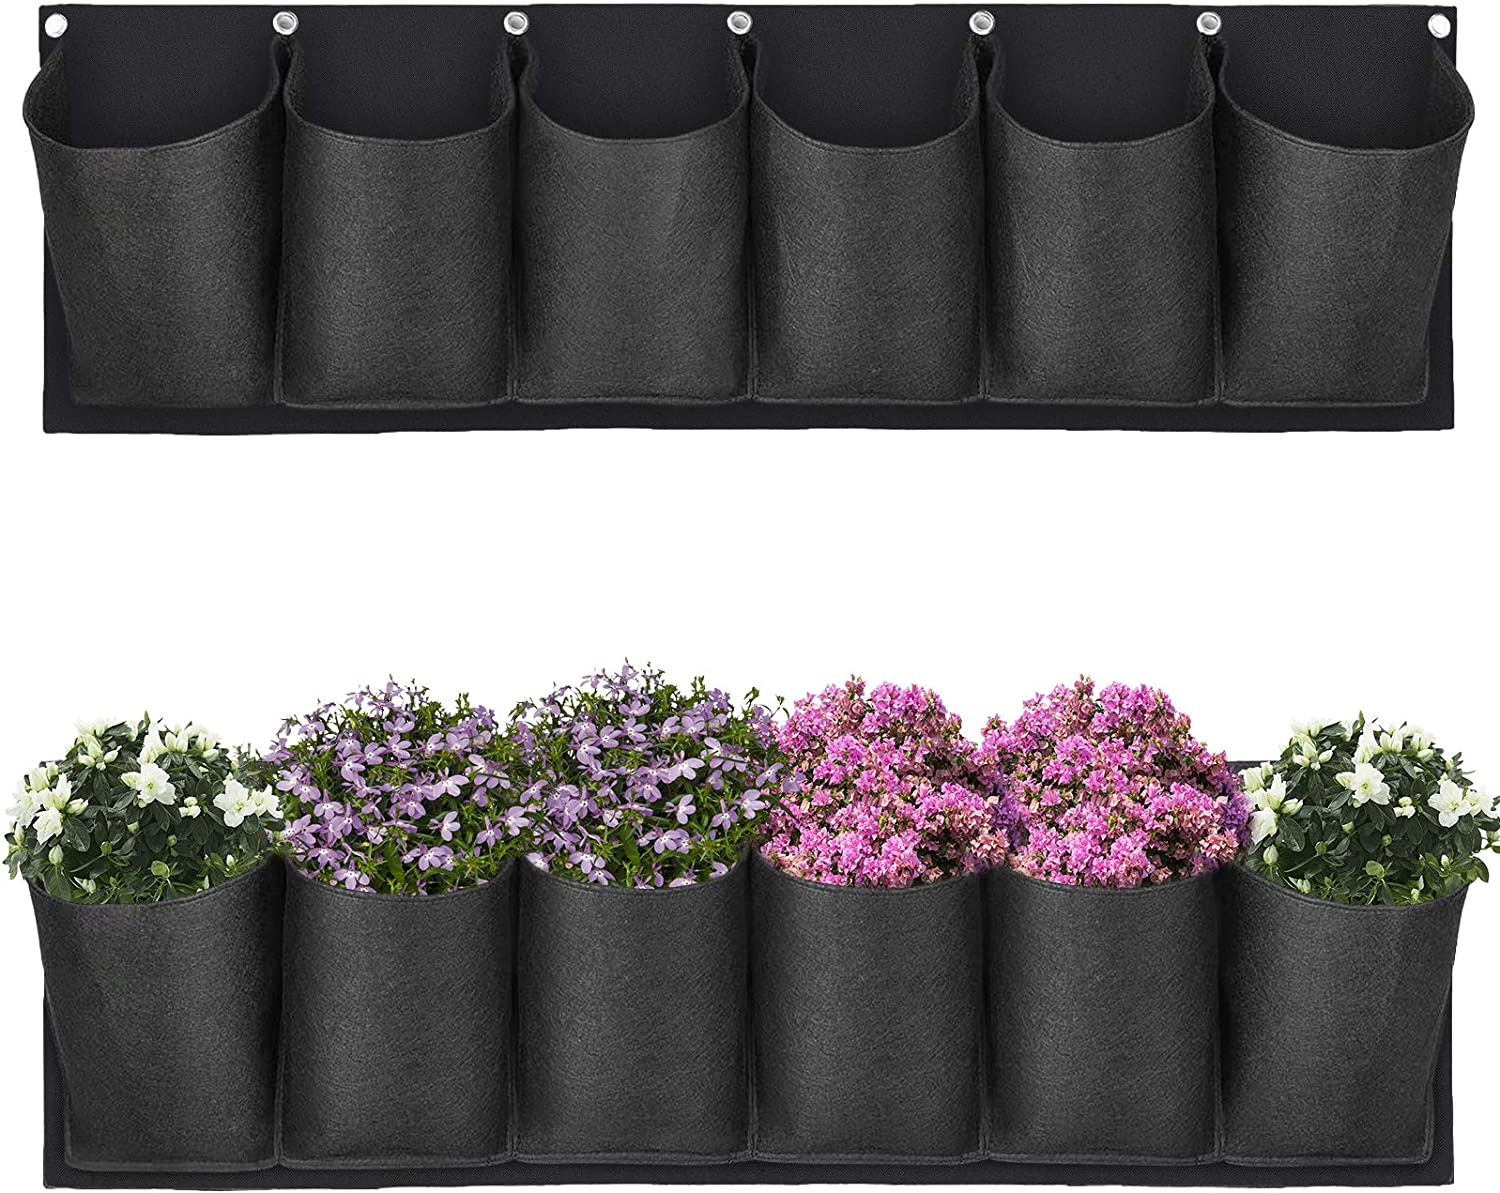 Hanging Planter Bags Waterproof 6 Pocket Garden Horizontal Planter Bags Wall-Mounted Felt Planting Grow Bags Outdoor Indoor Gardening Flower Container Plant Grow Bag for Flower Vegetable